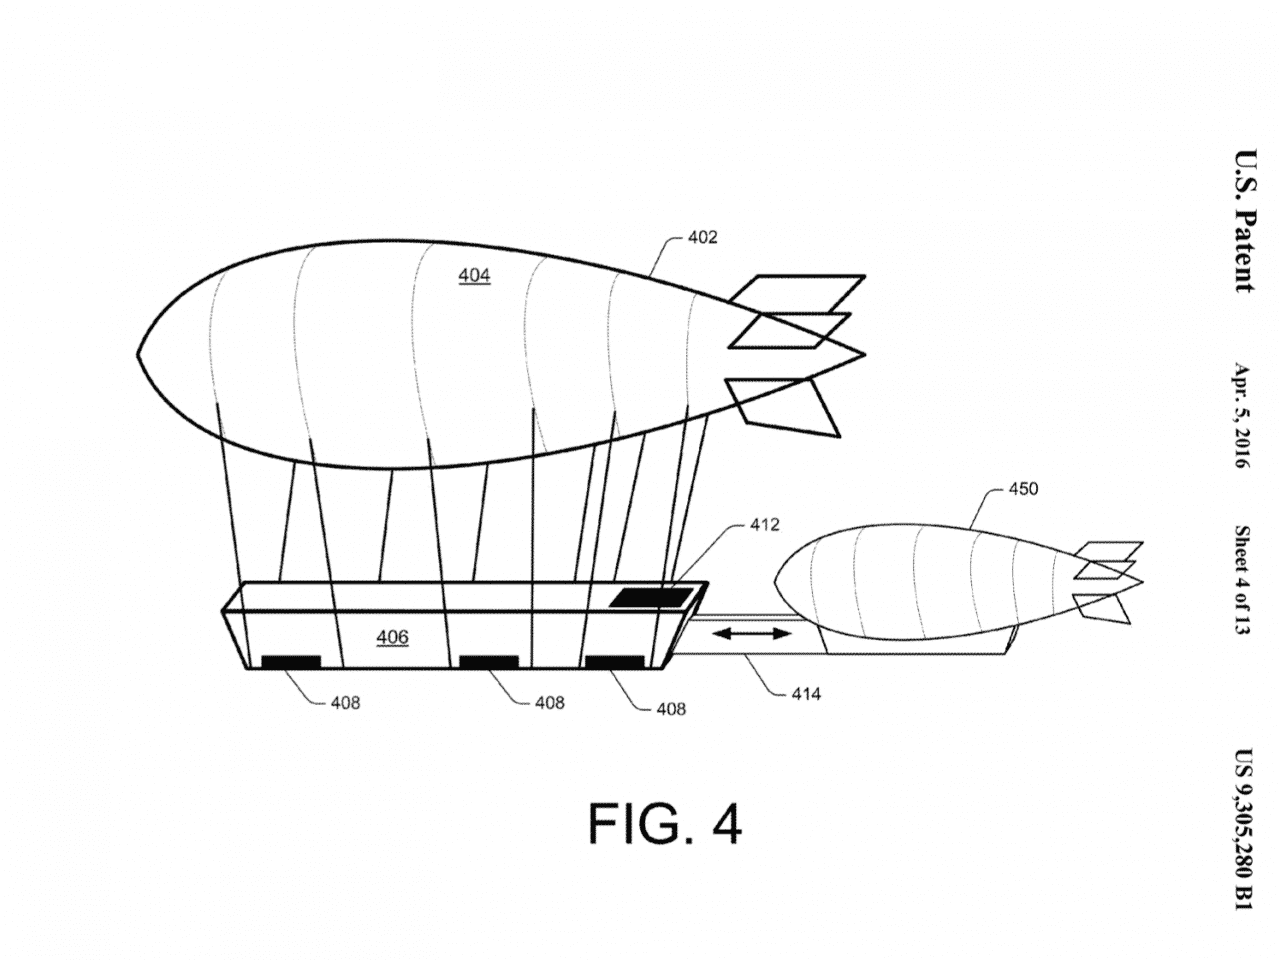 Amazon Eyes Warehouse Blimps And Delivery Drones To Dominate Distribution